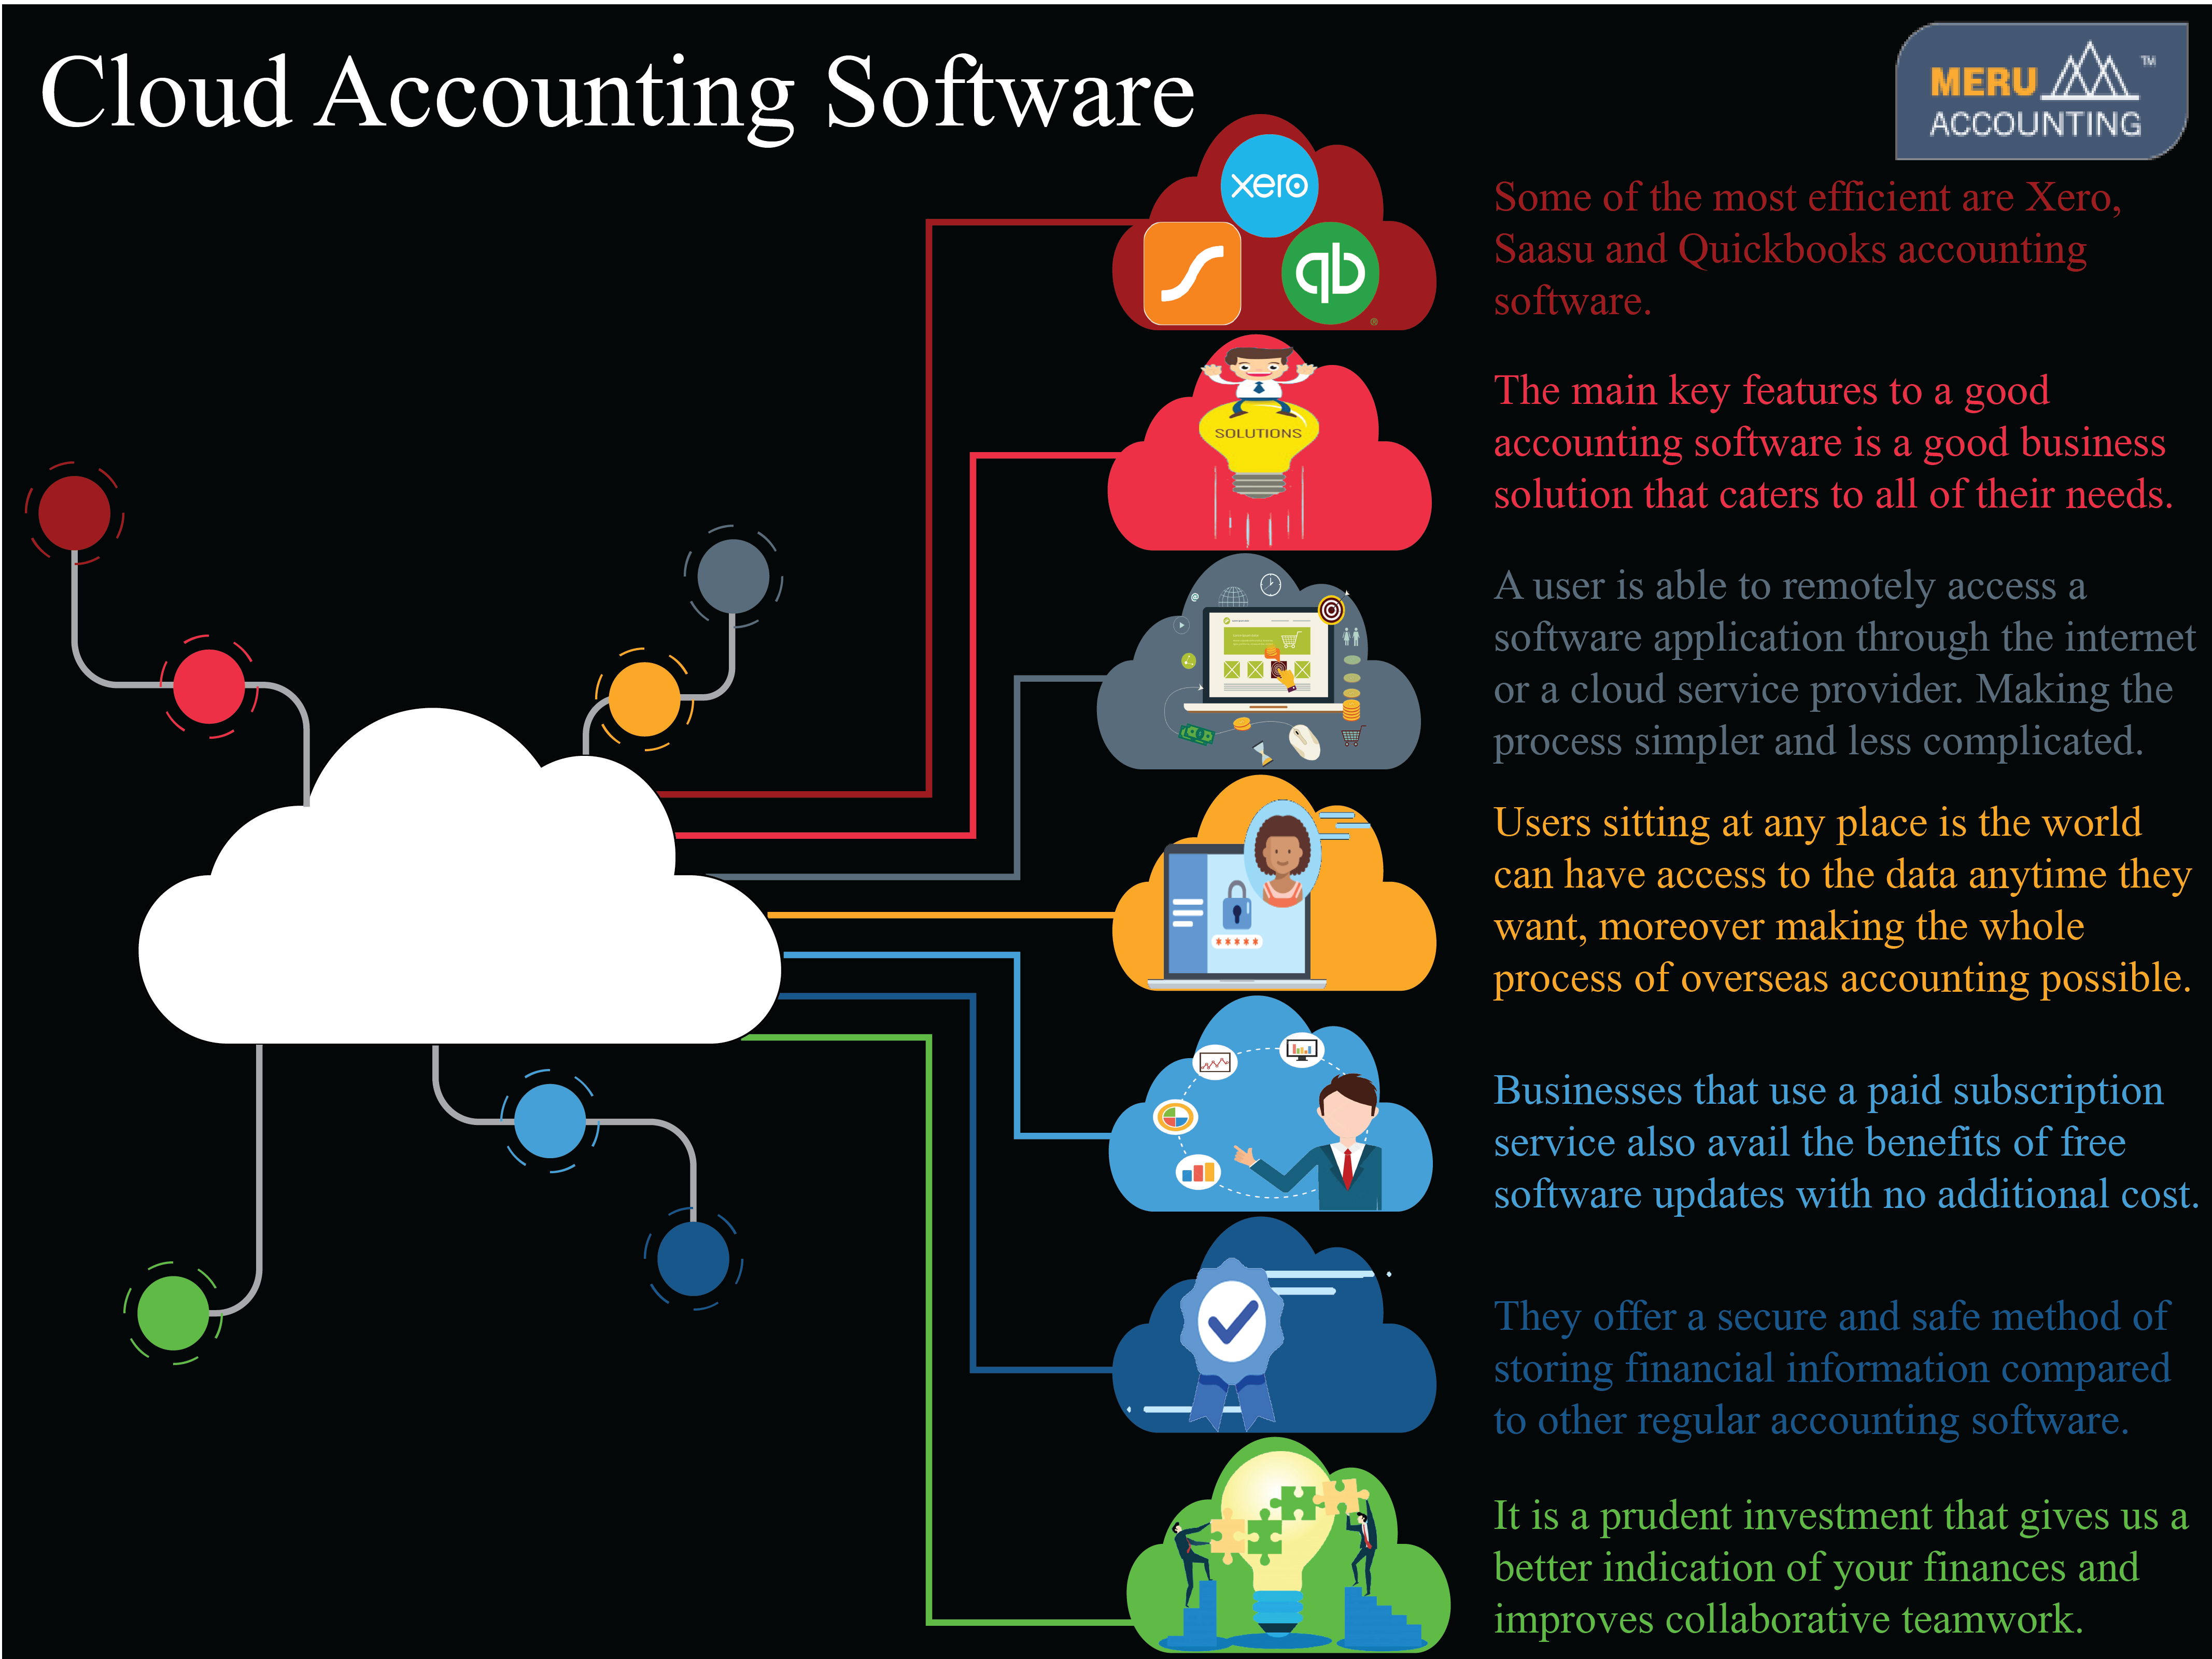 Cloud Accounting Software, Cloud based accounting | Meru Accounting